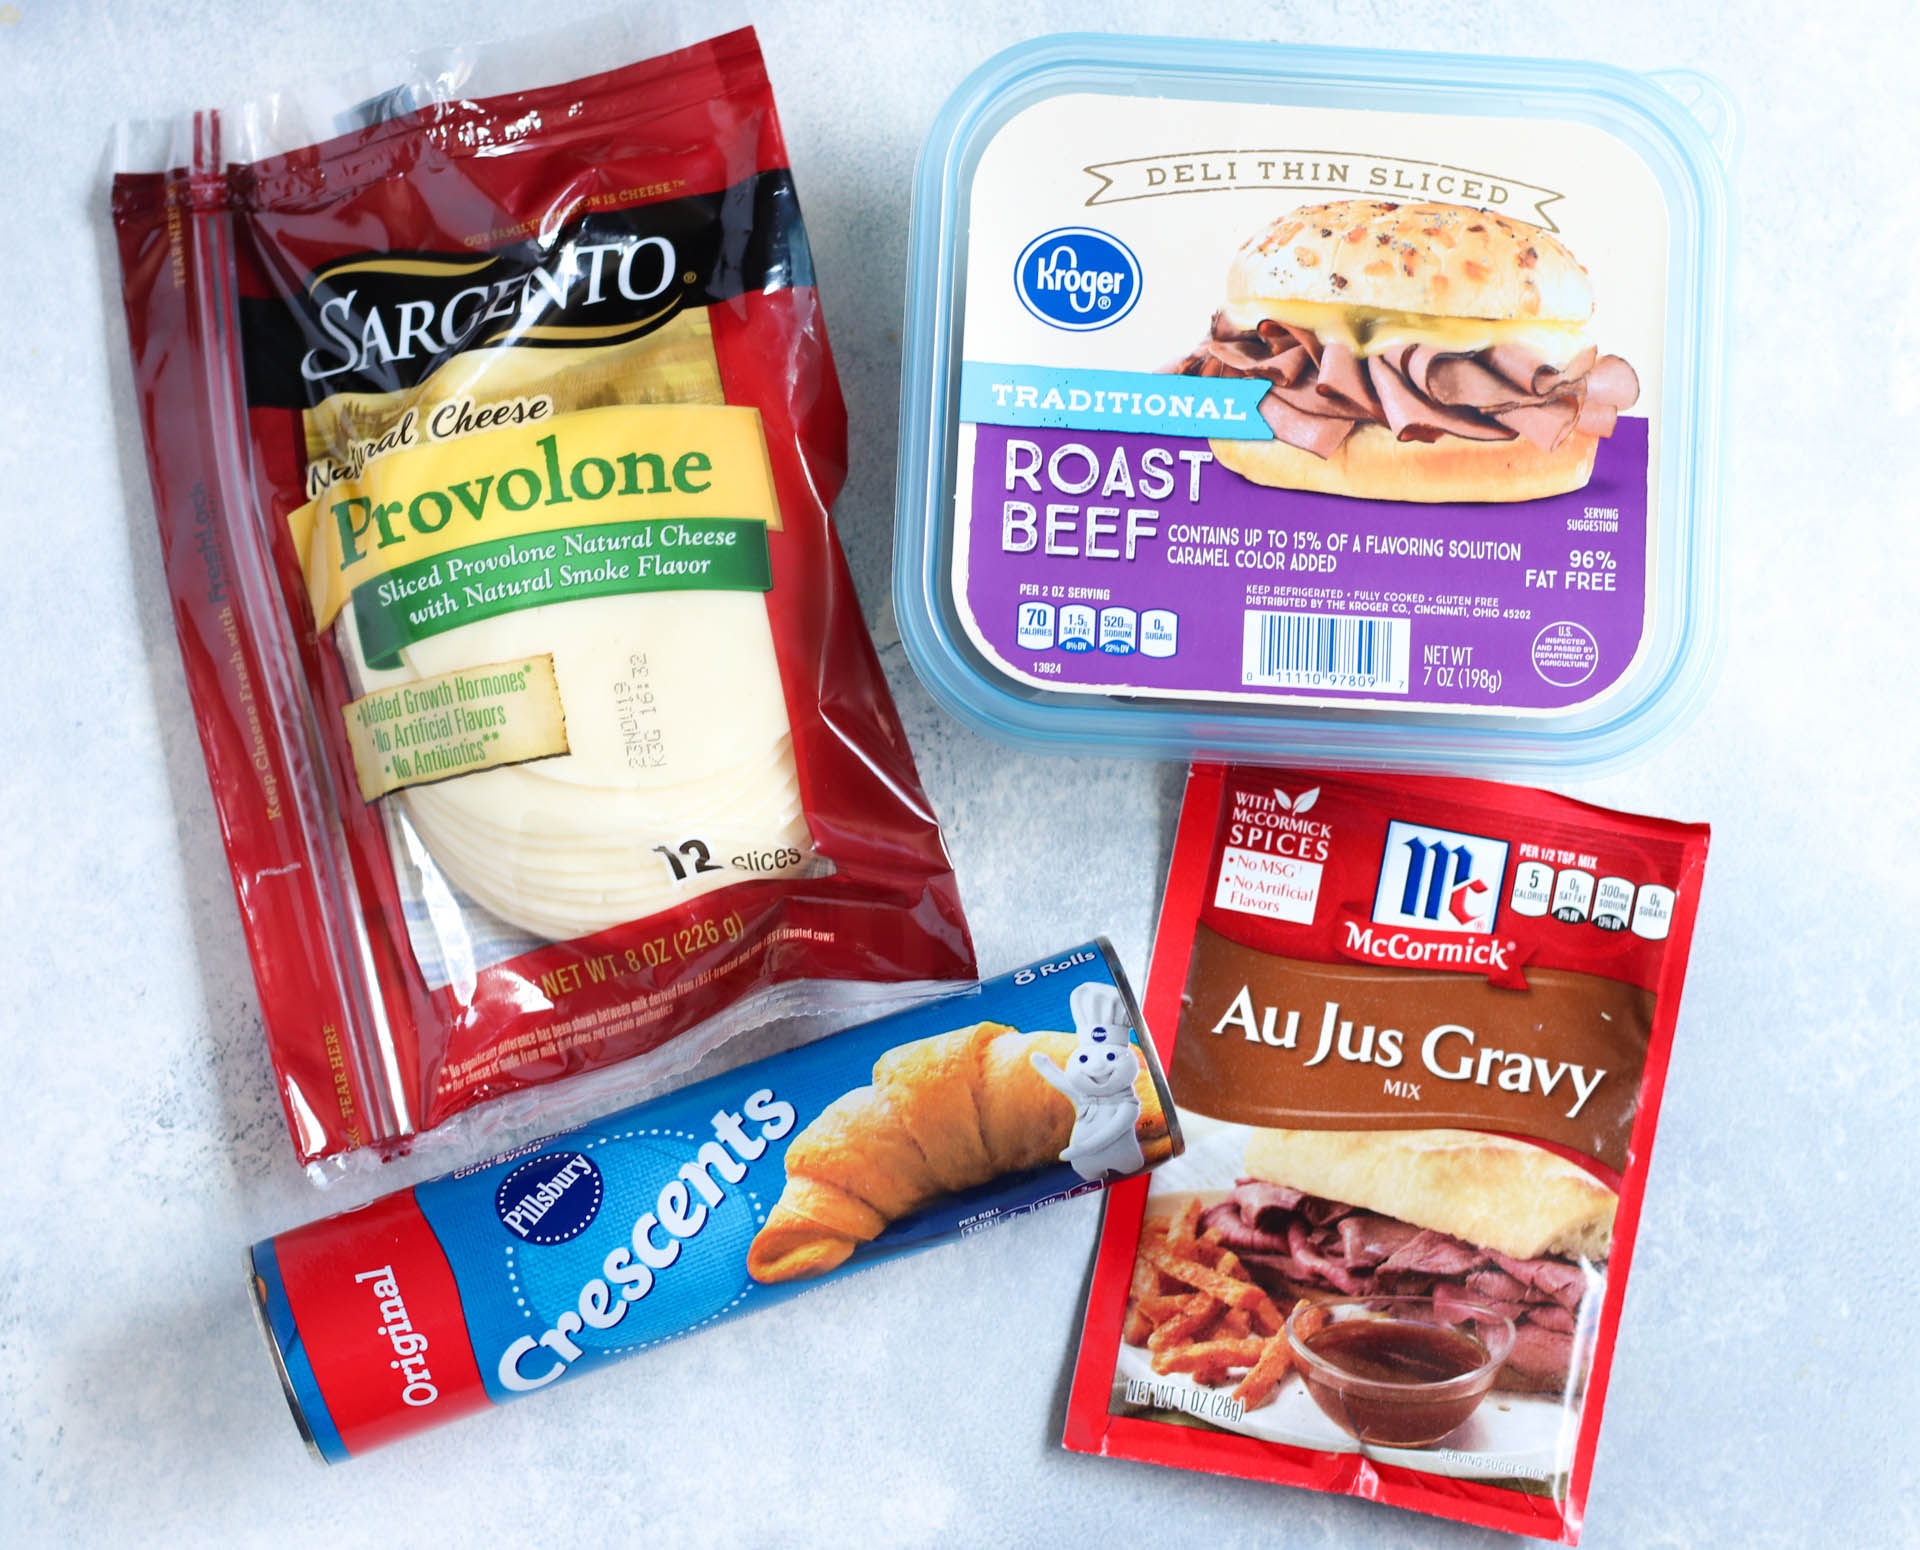 Provolone cheese, deli roast beef, refrigerated crescents, Au Jus Gravy Mix Packet